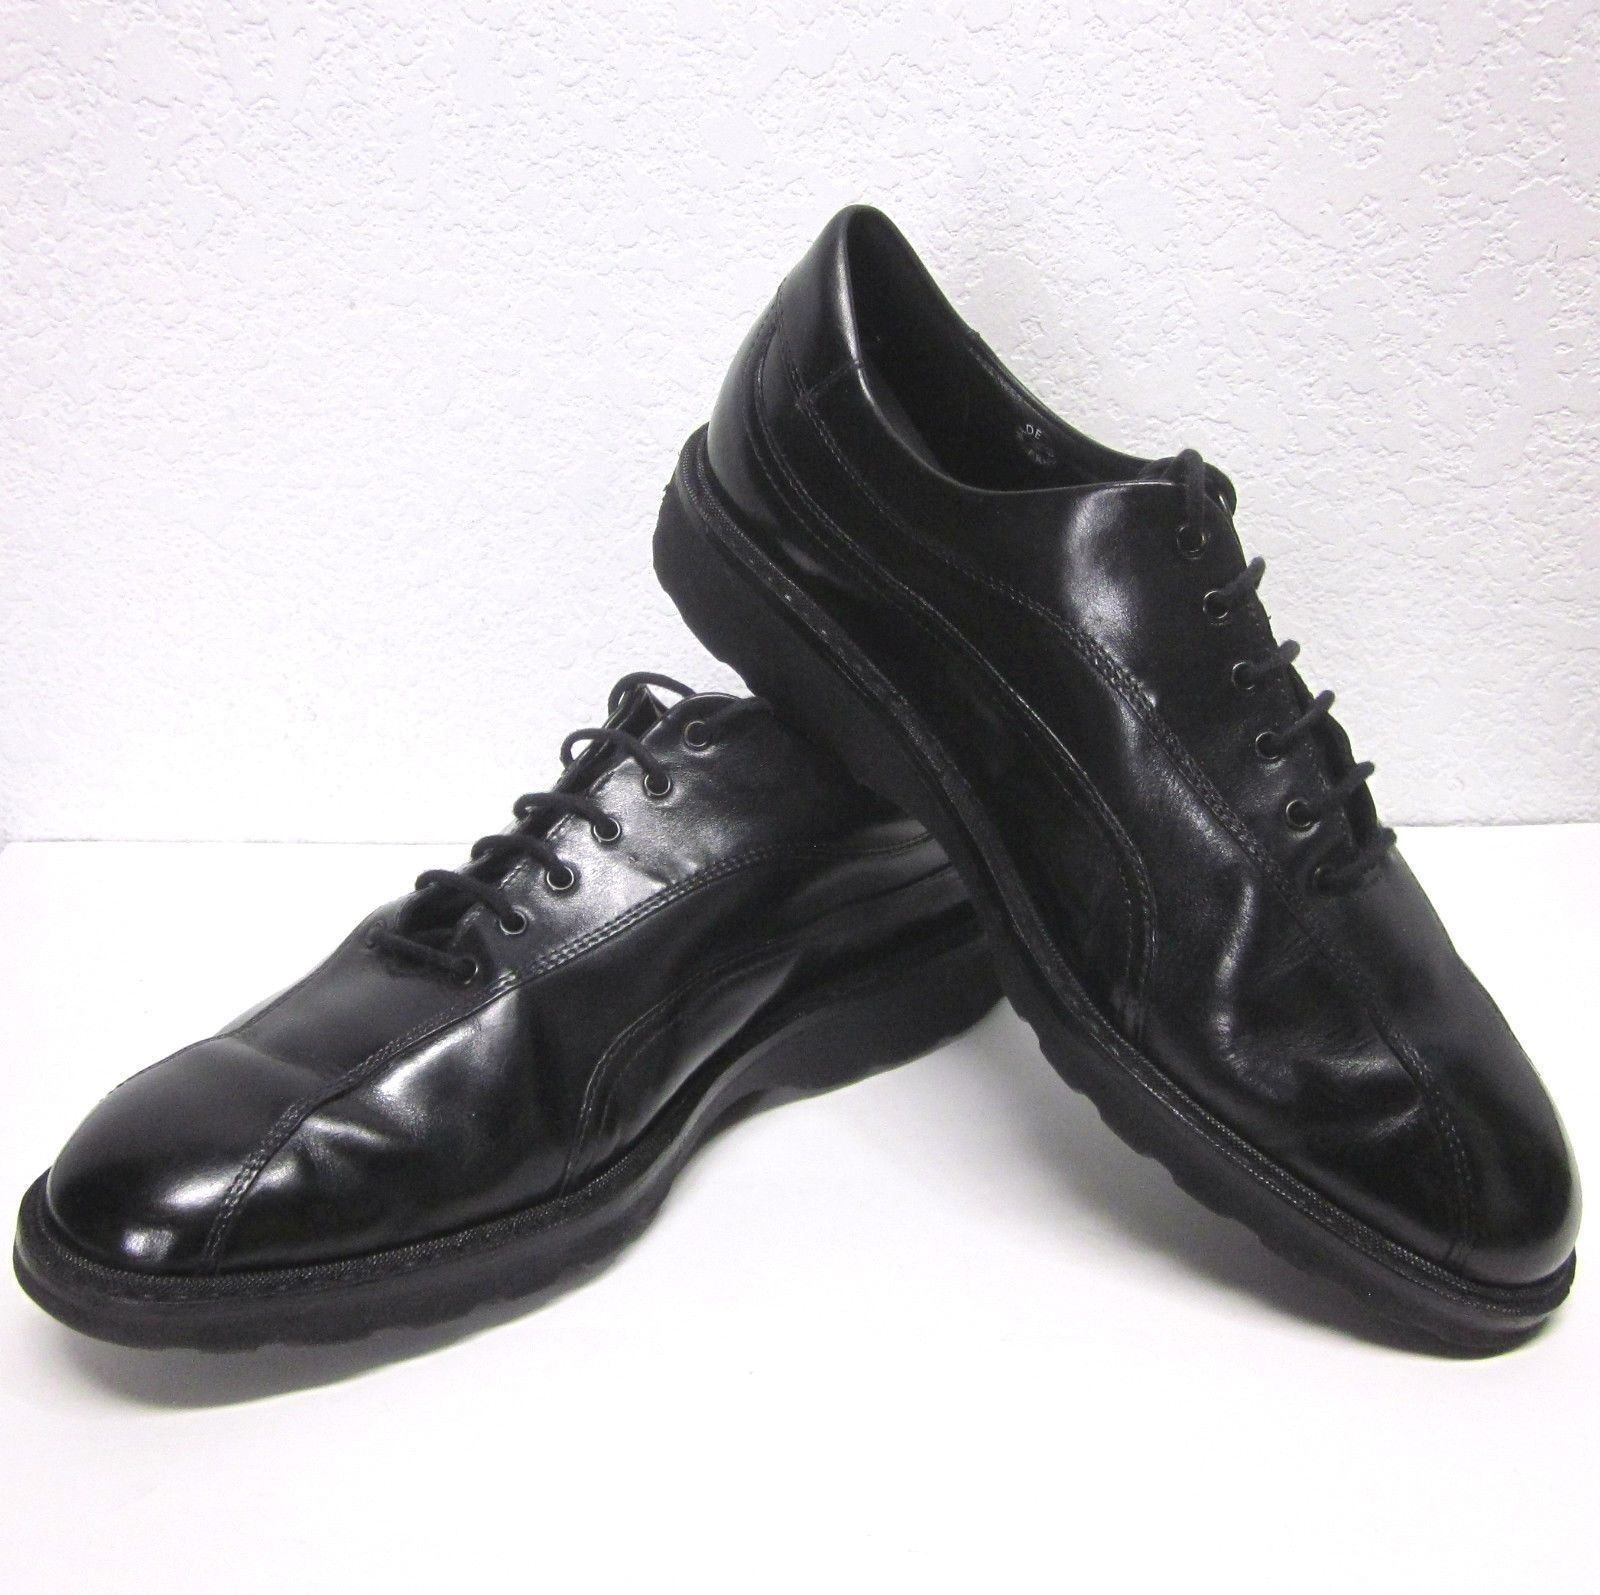 MEPHISTO AIR-RELAX GOODYEAR WELT MEN'S (9) BLACK LEATHER OXFORD DRESS SHOES VGUC